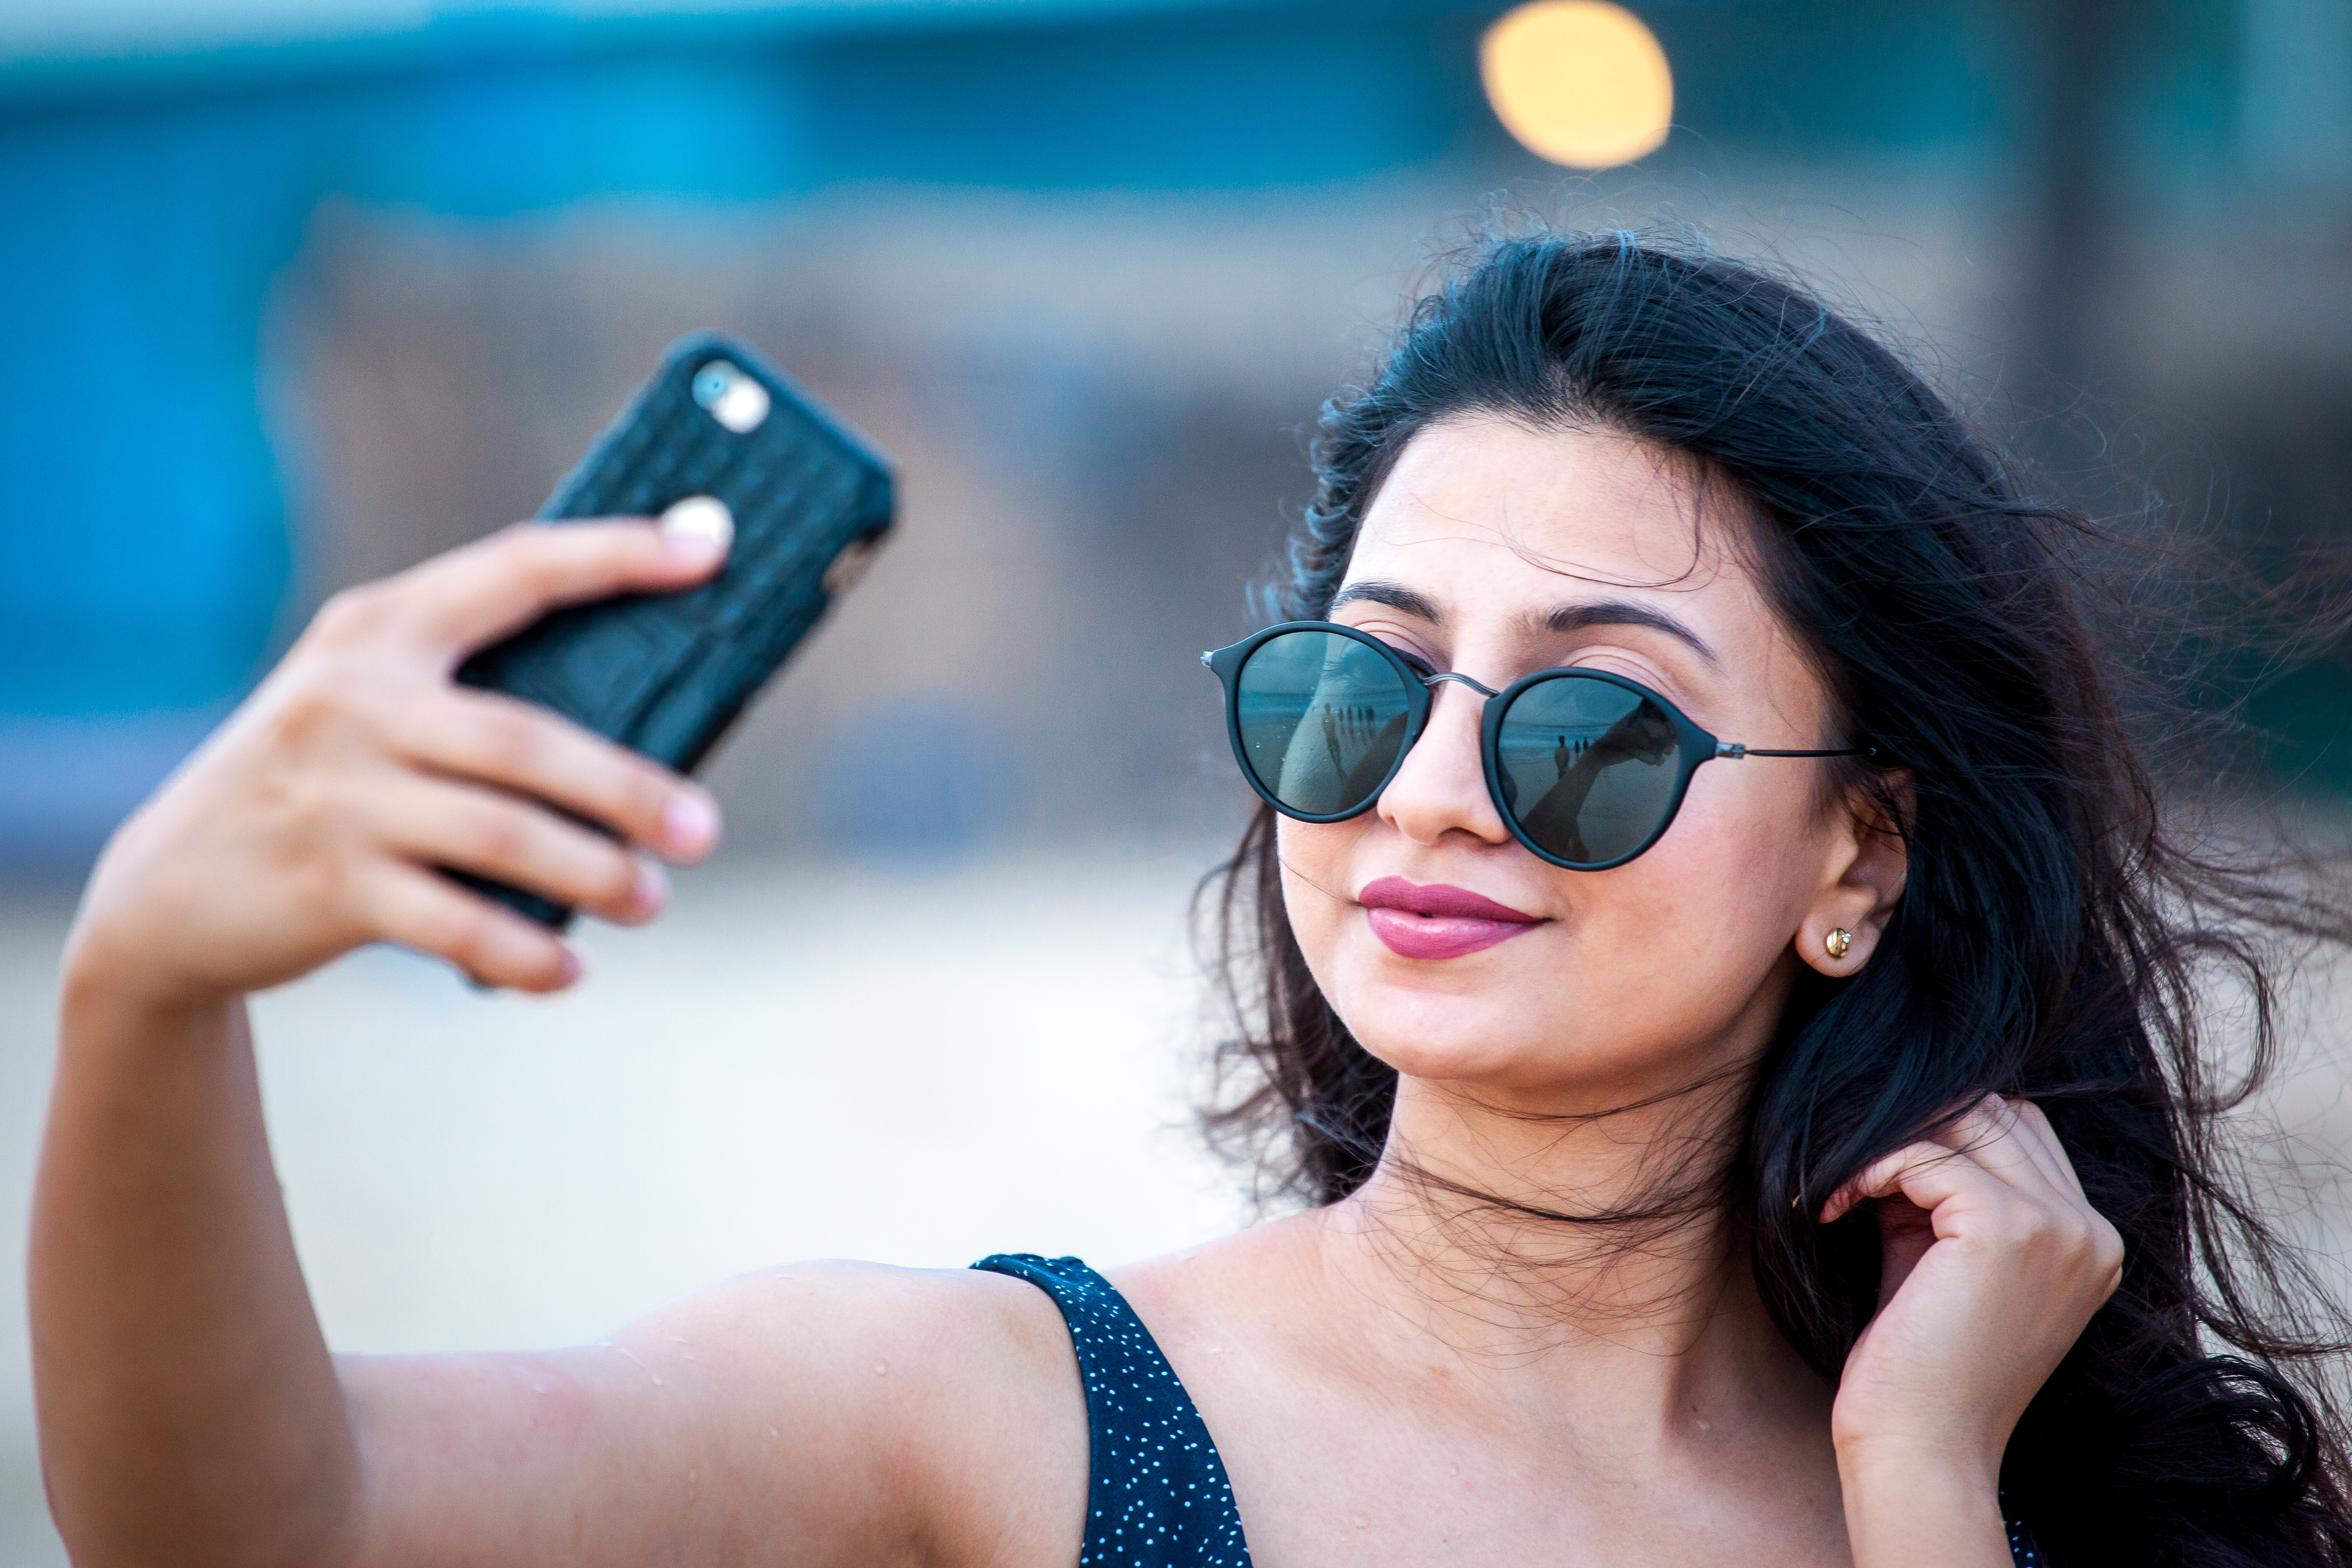 Indian Instagram Influencers Have 16 Million Fake Followers